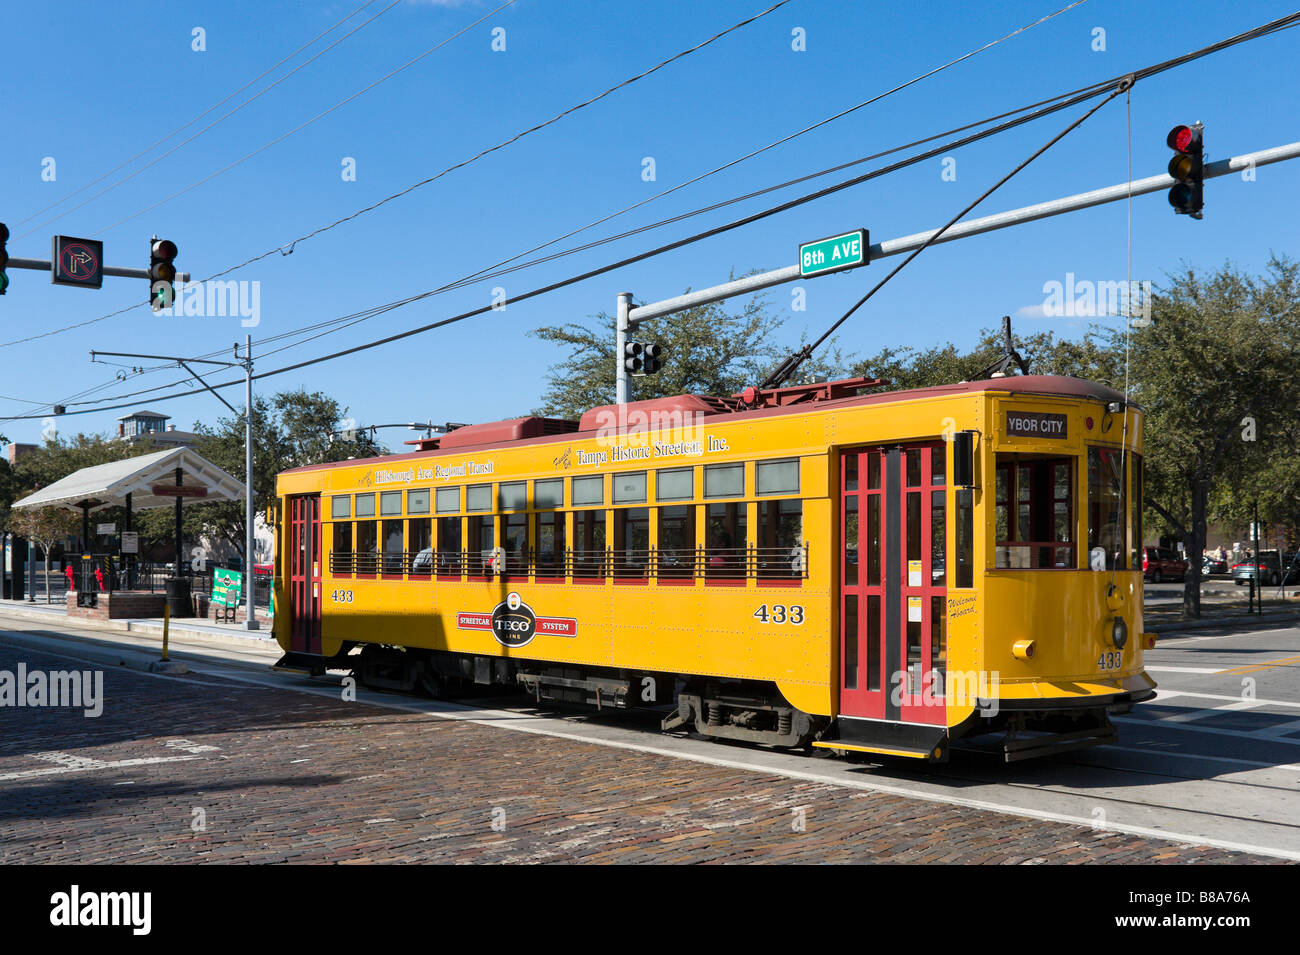 TECO Line Streetcar on 8th Avenue in the historic district of Ybor City, Tampa, Florida, USA - Stock Image